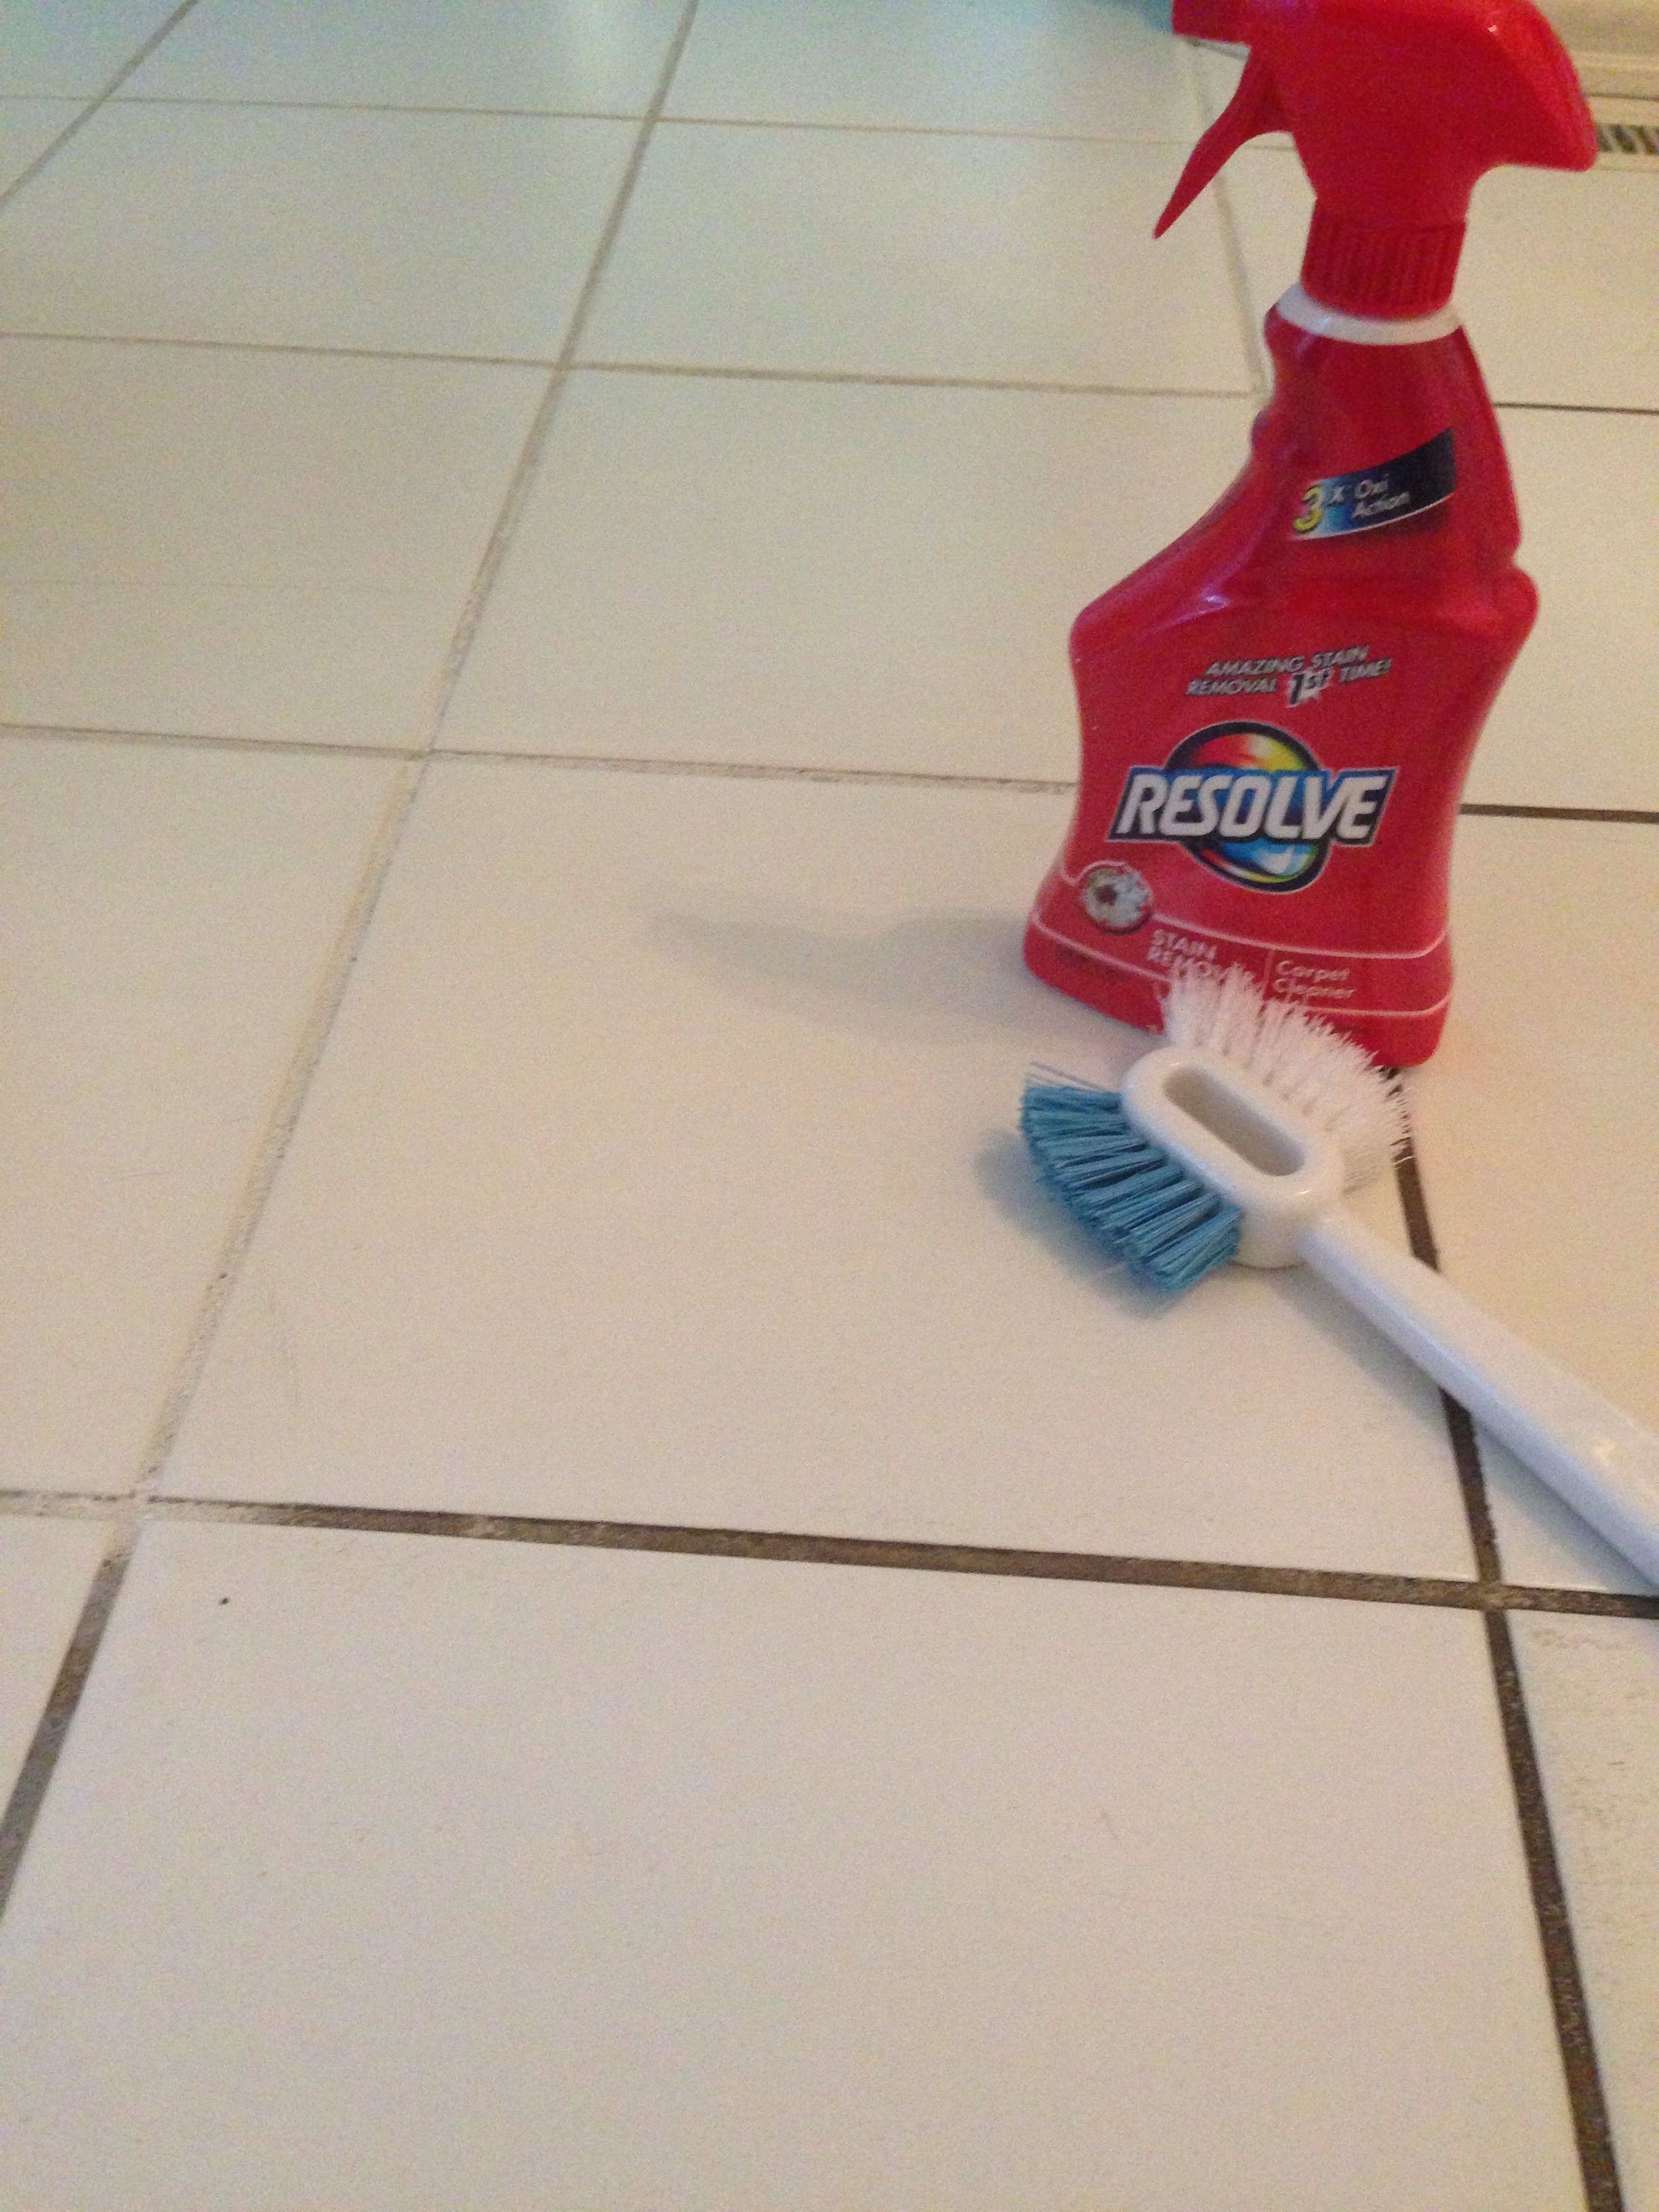 Resolve carpet cleaner to clean grout